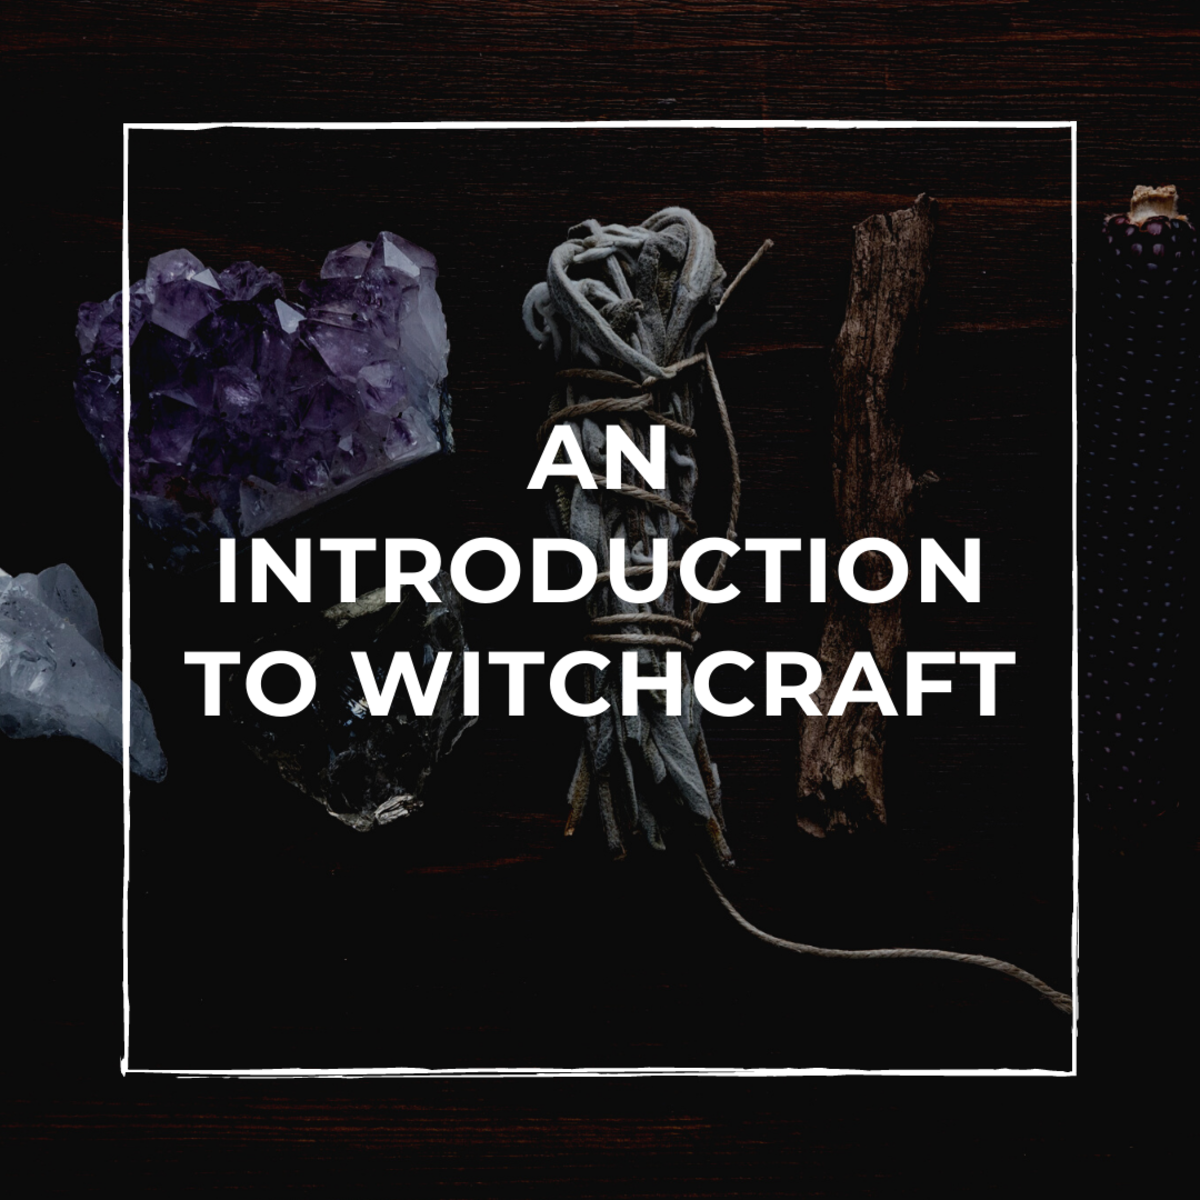 An Introduction to Witchcraft